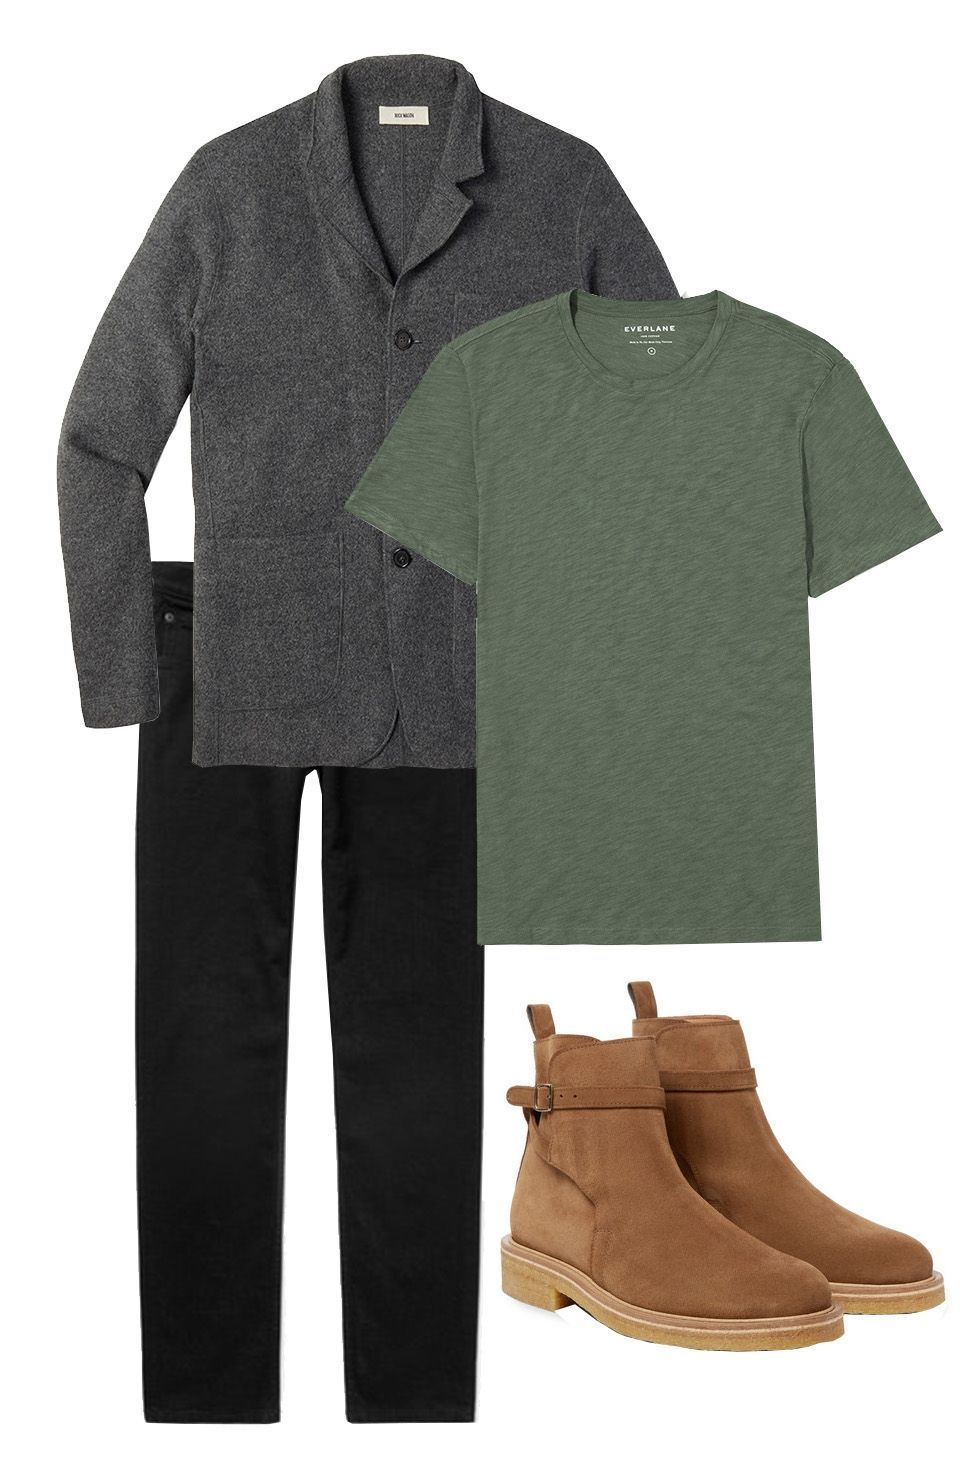 new year Fashion Men 5 Ways to Dress for a New Year's